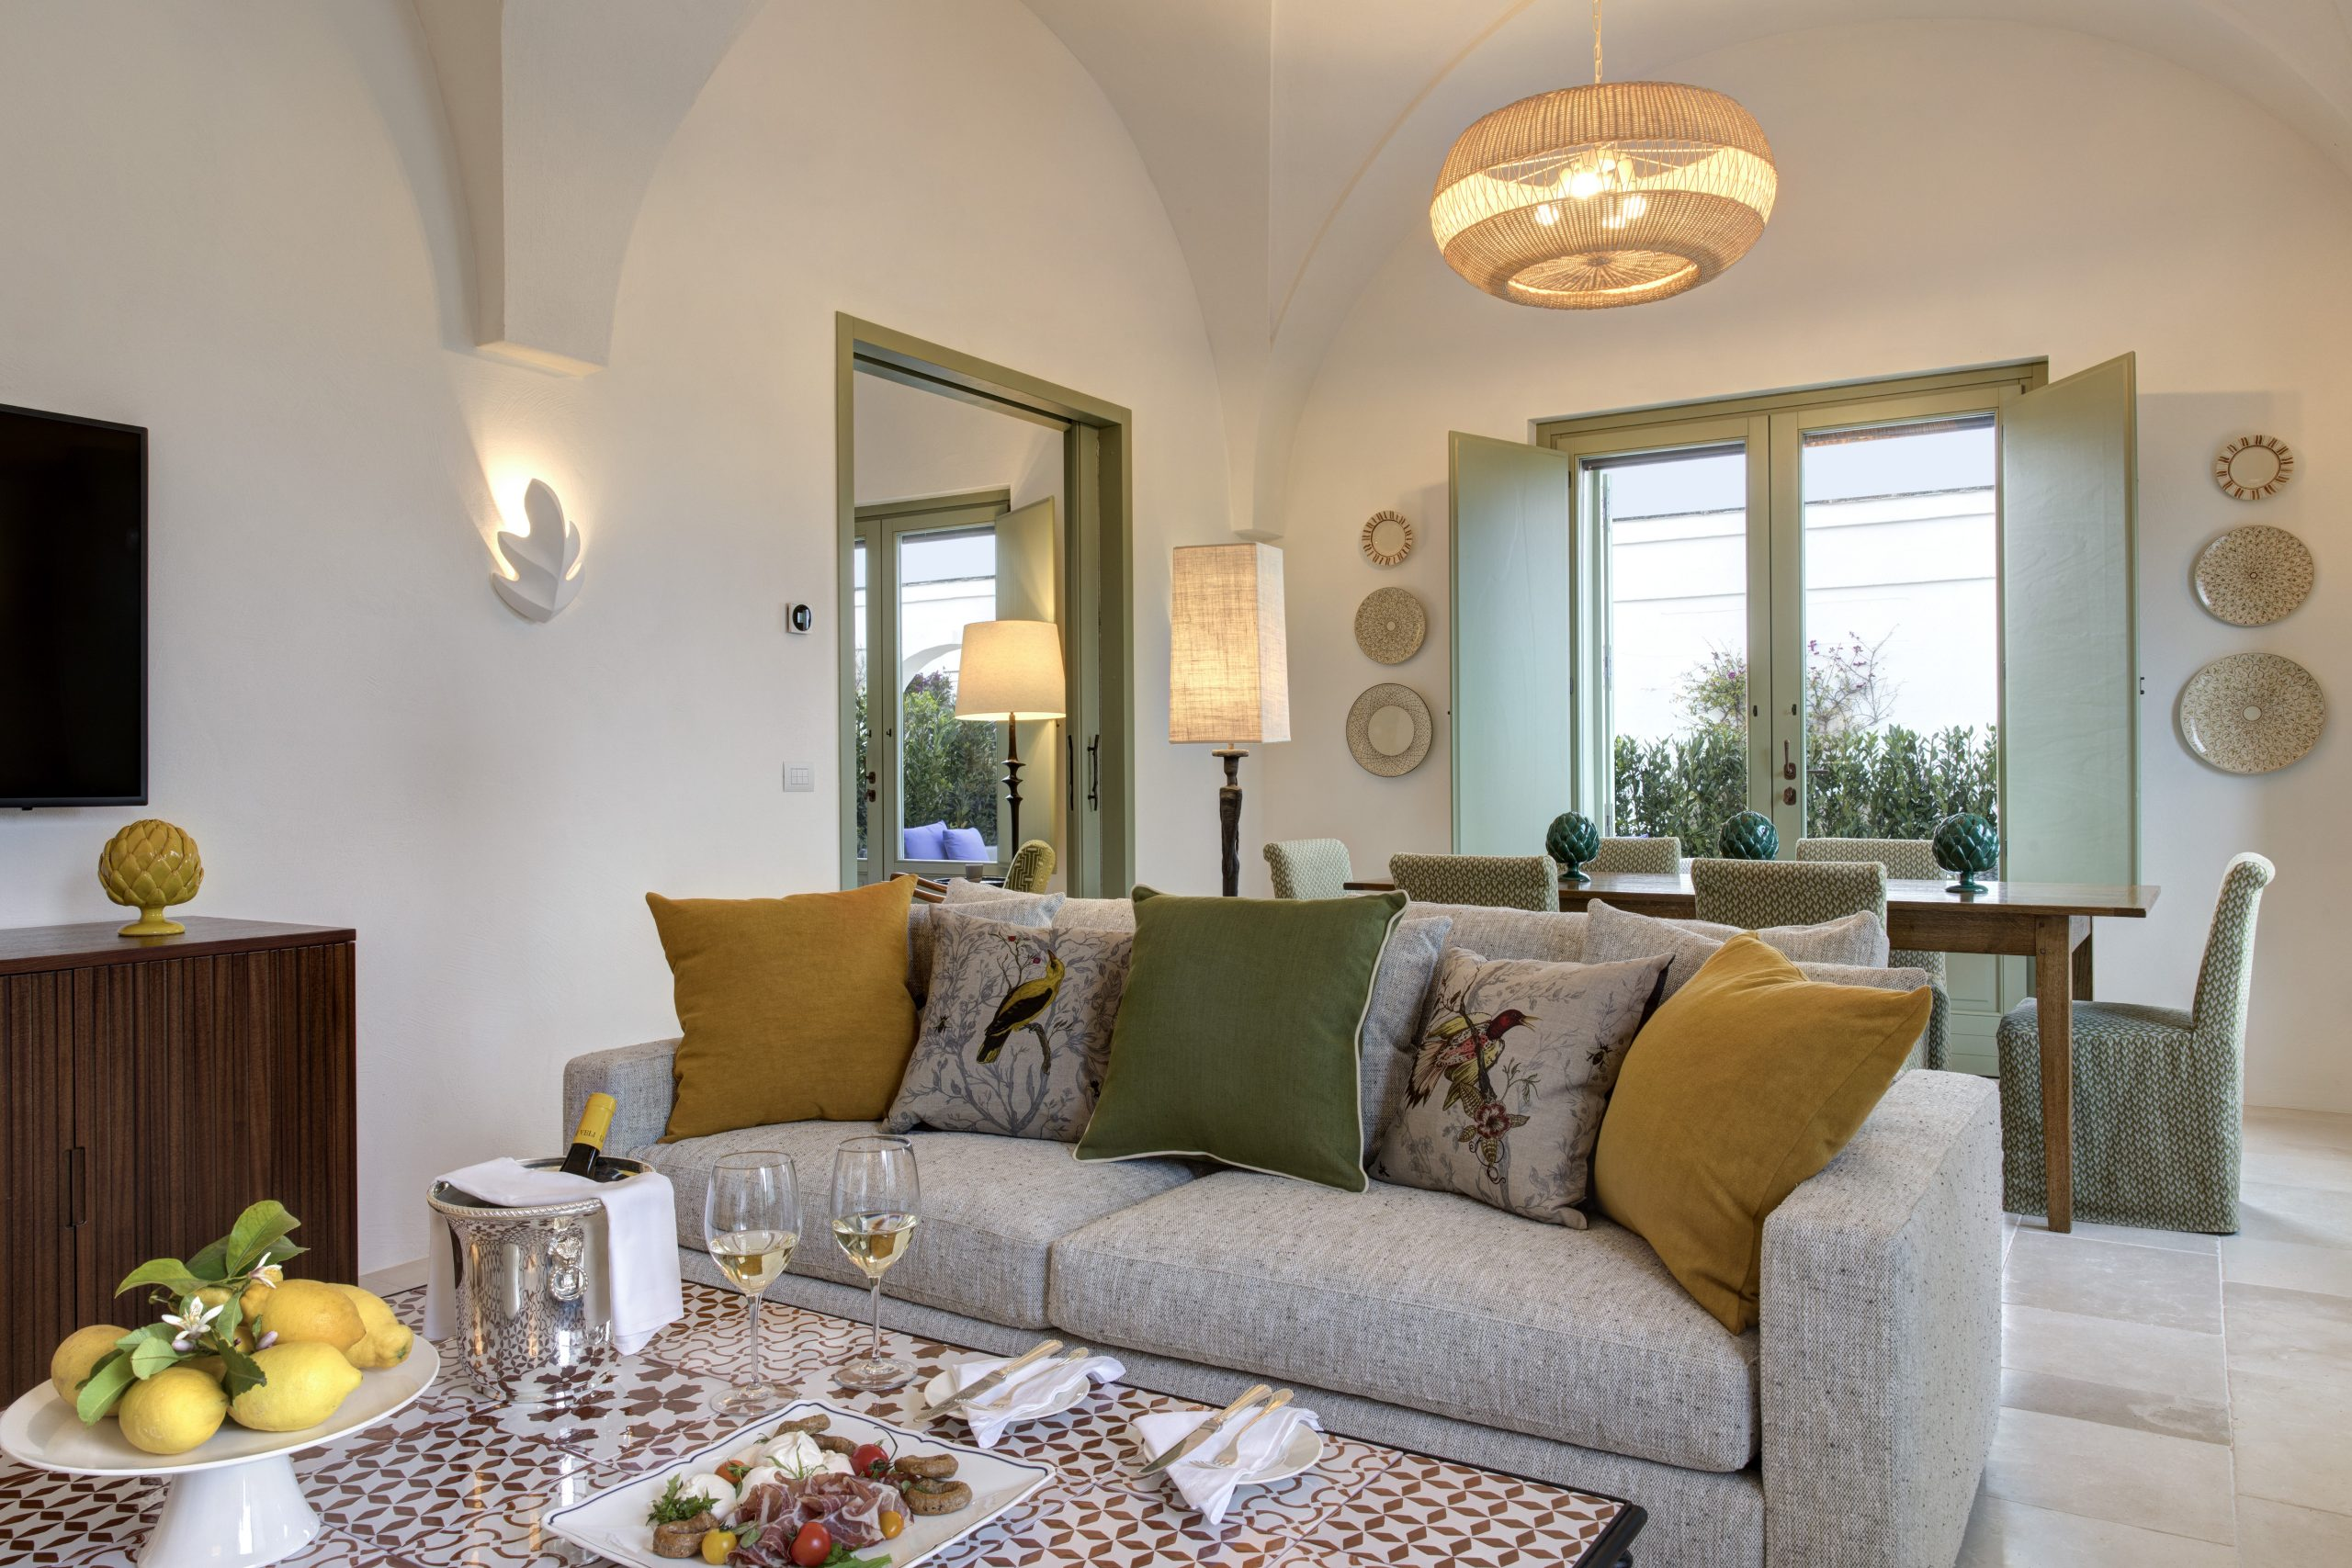 RFH Masseria Torre Maizza - Grand Suite 8484 JG May 19